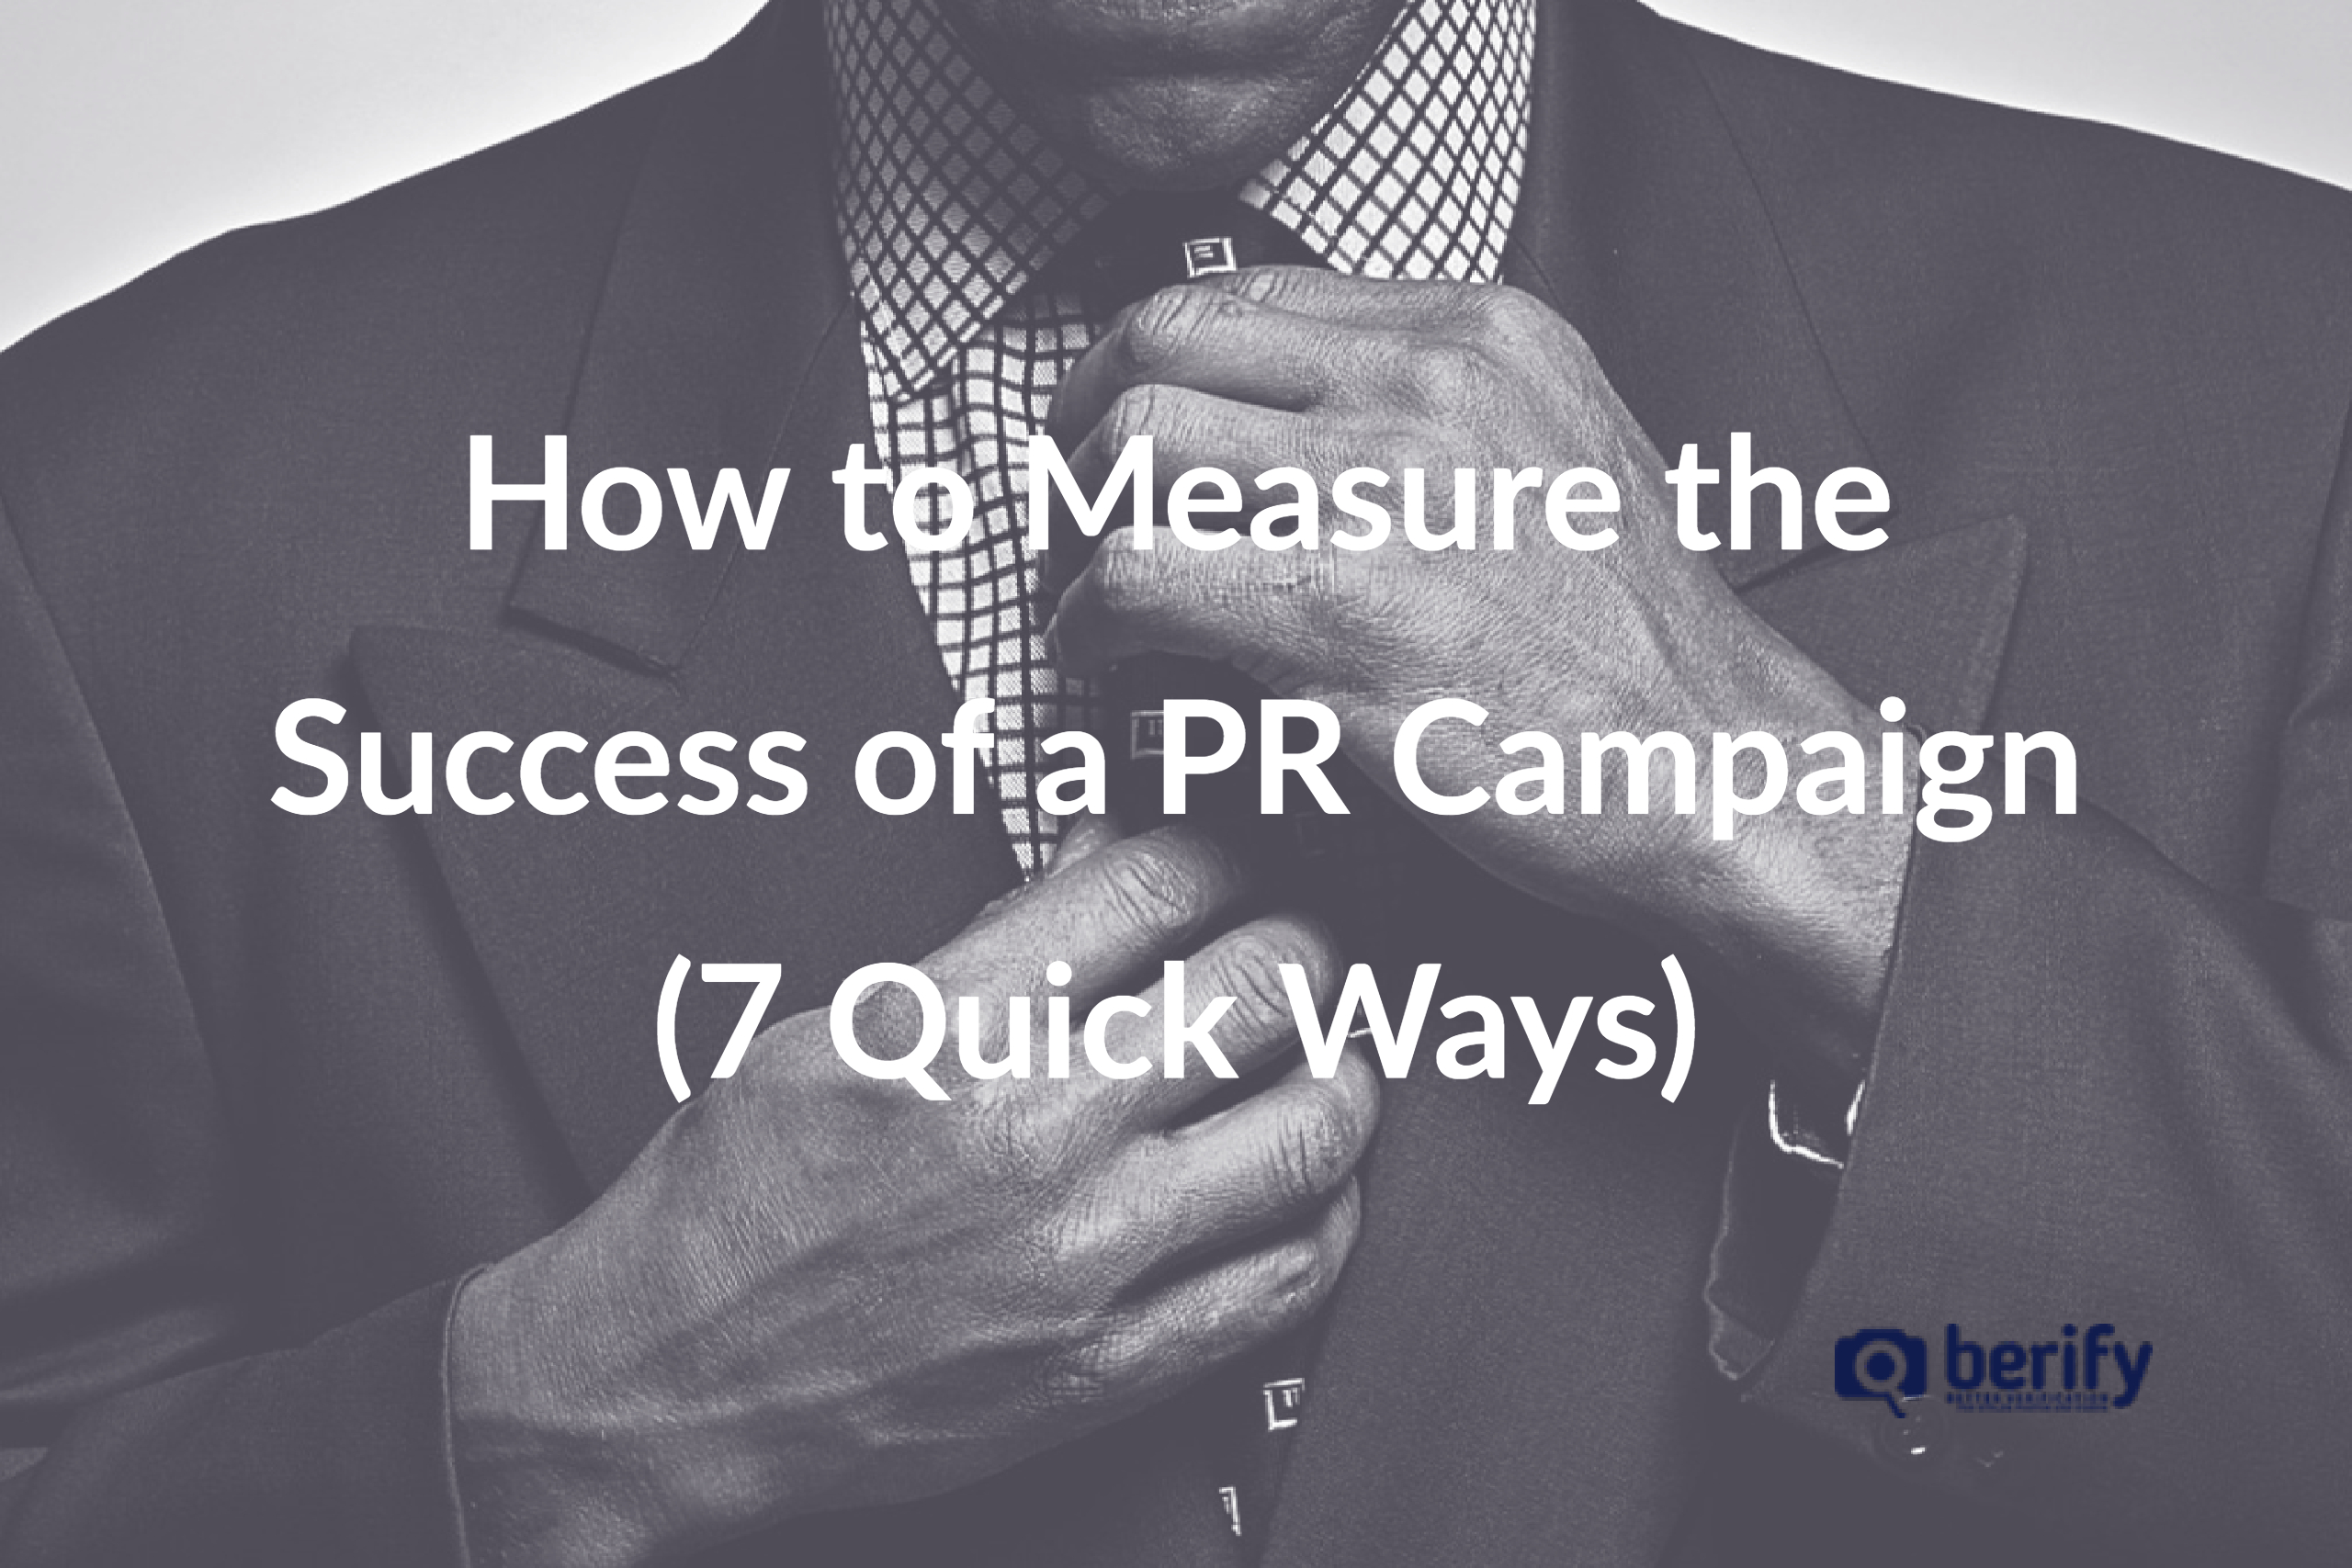 How to Measure the Success of a PR Campaign [7 Quick Ways]